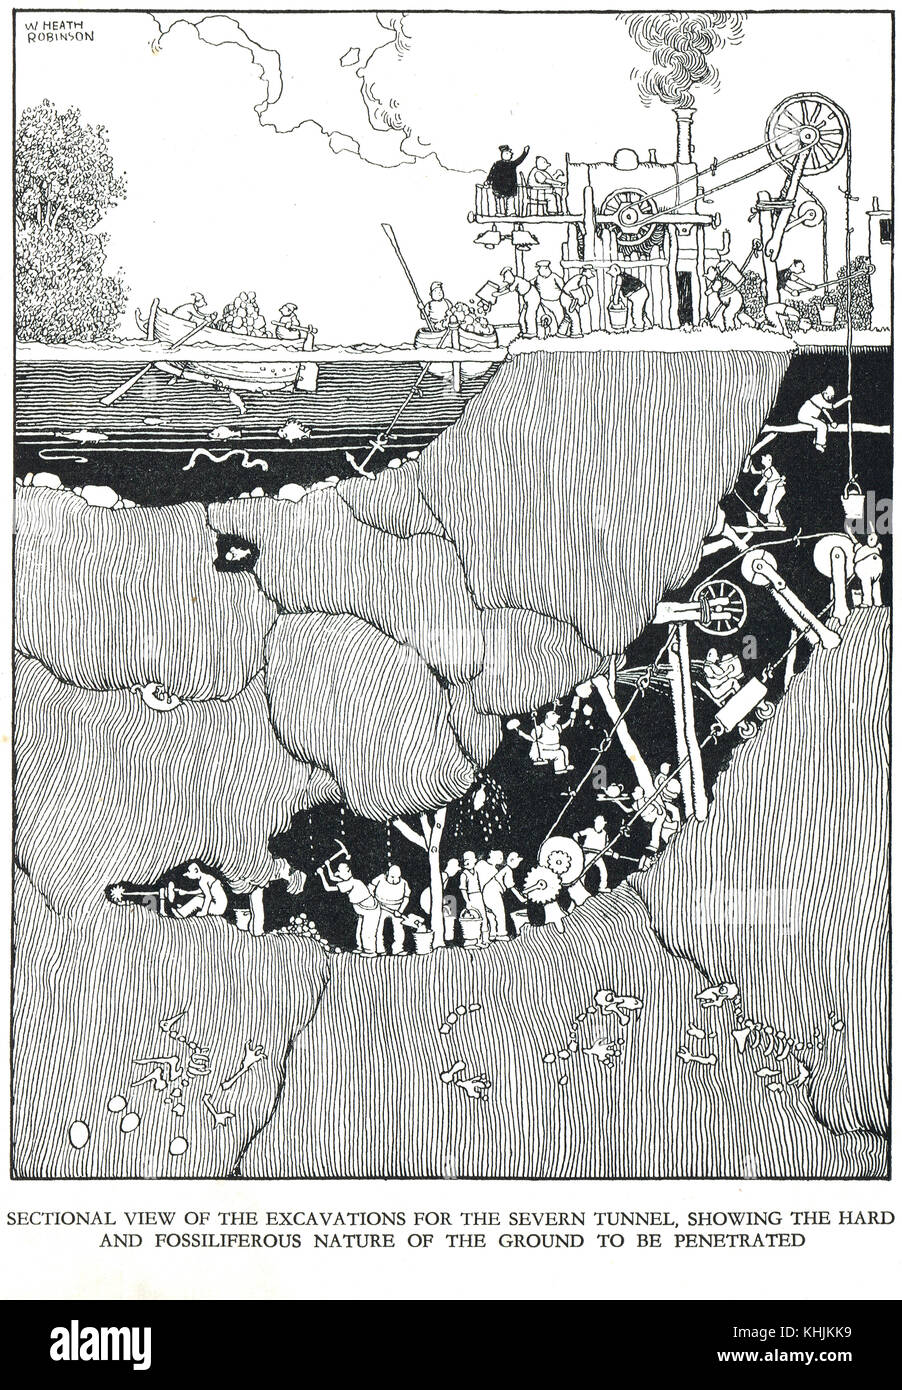 Excavating the Severn Railway Tunnel, Cartoon by William Heath Robinson - Stock Image